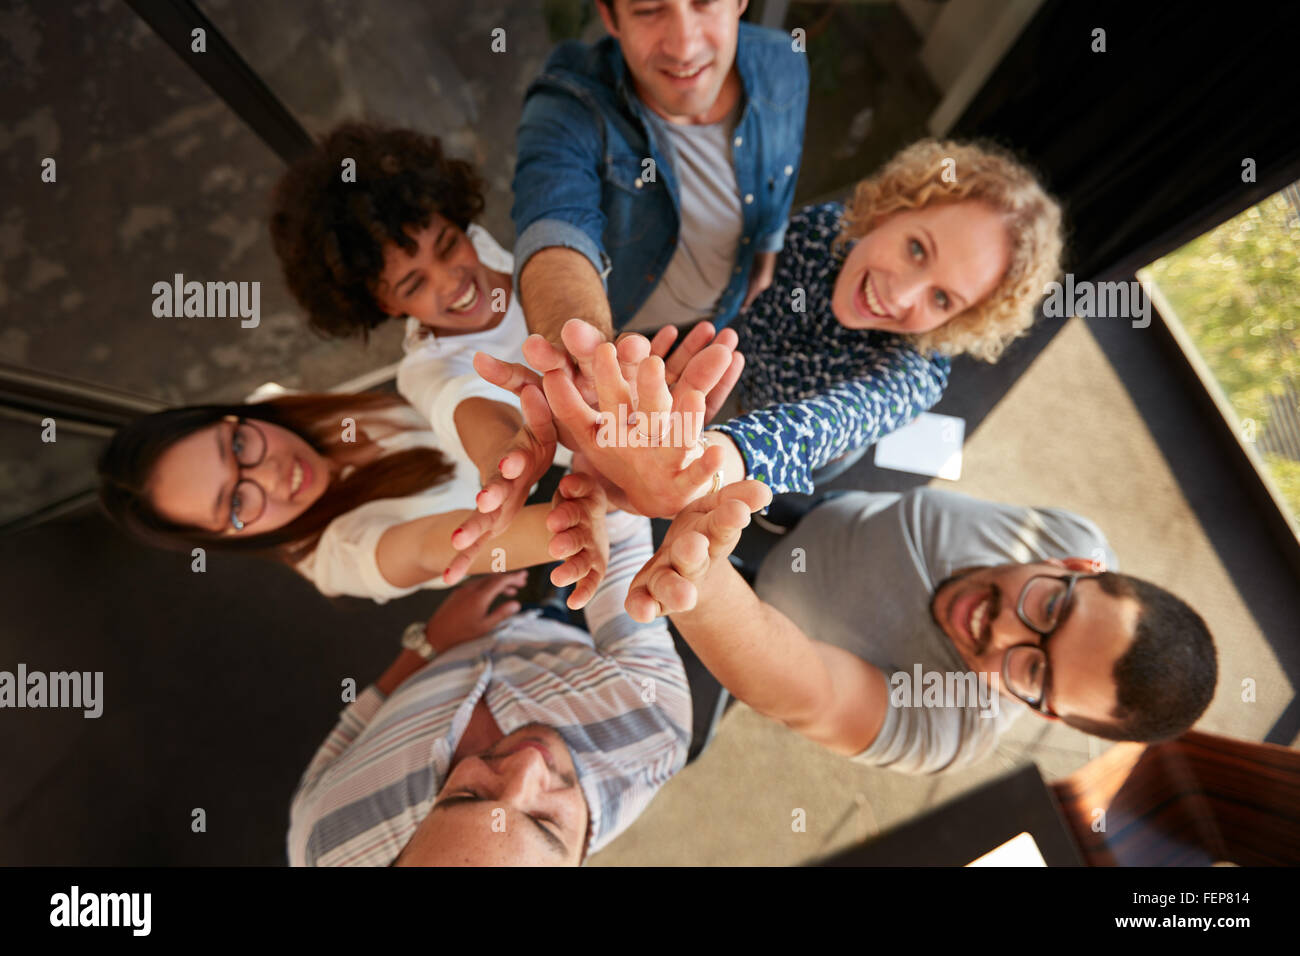 Top view of successful team of professionals high fiving and looking at camera smiling. Men and women making a pile - Stock Image